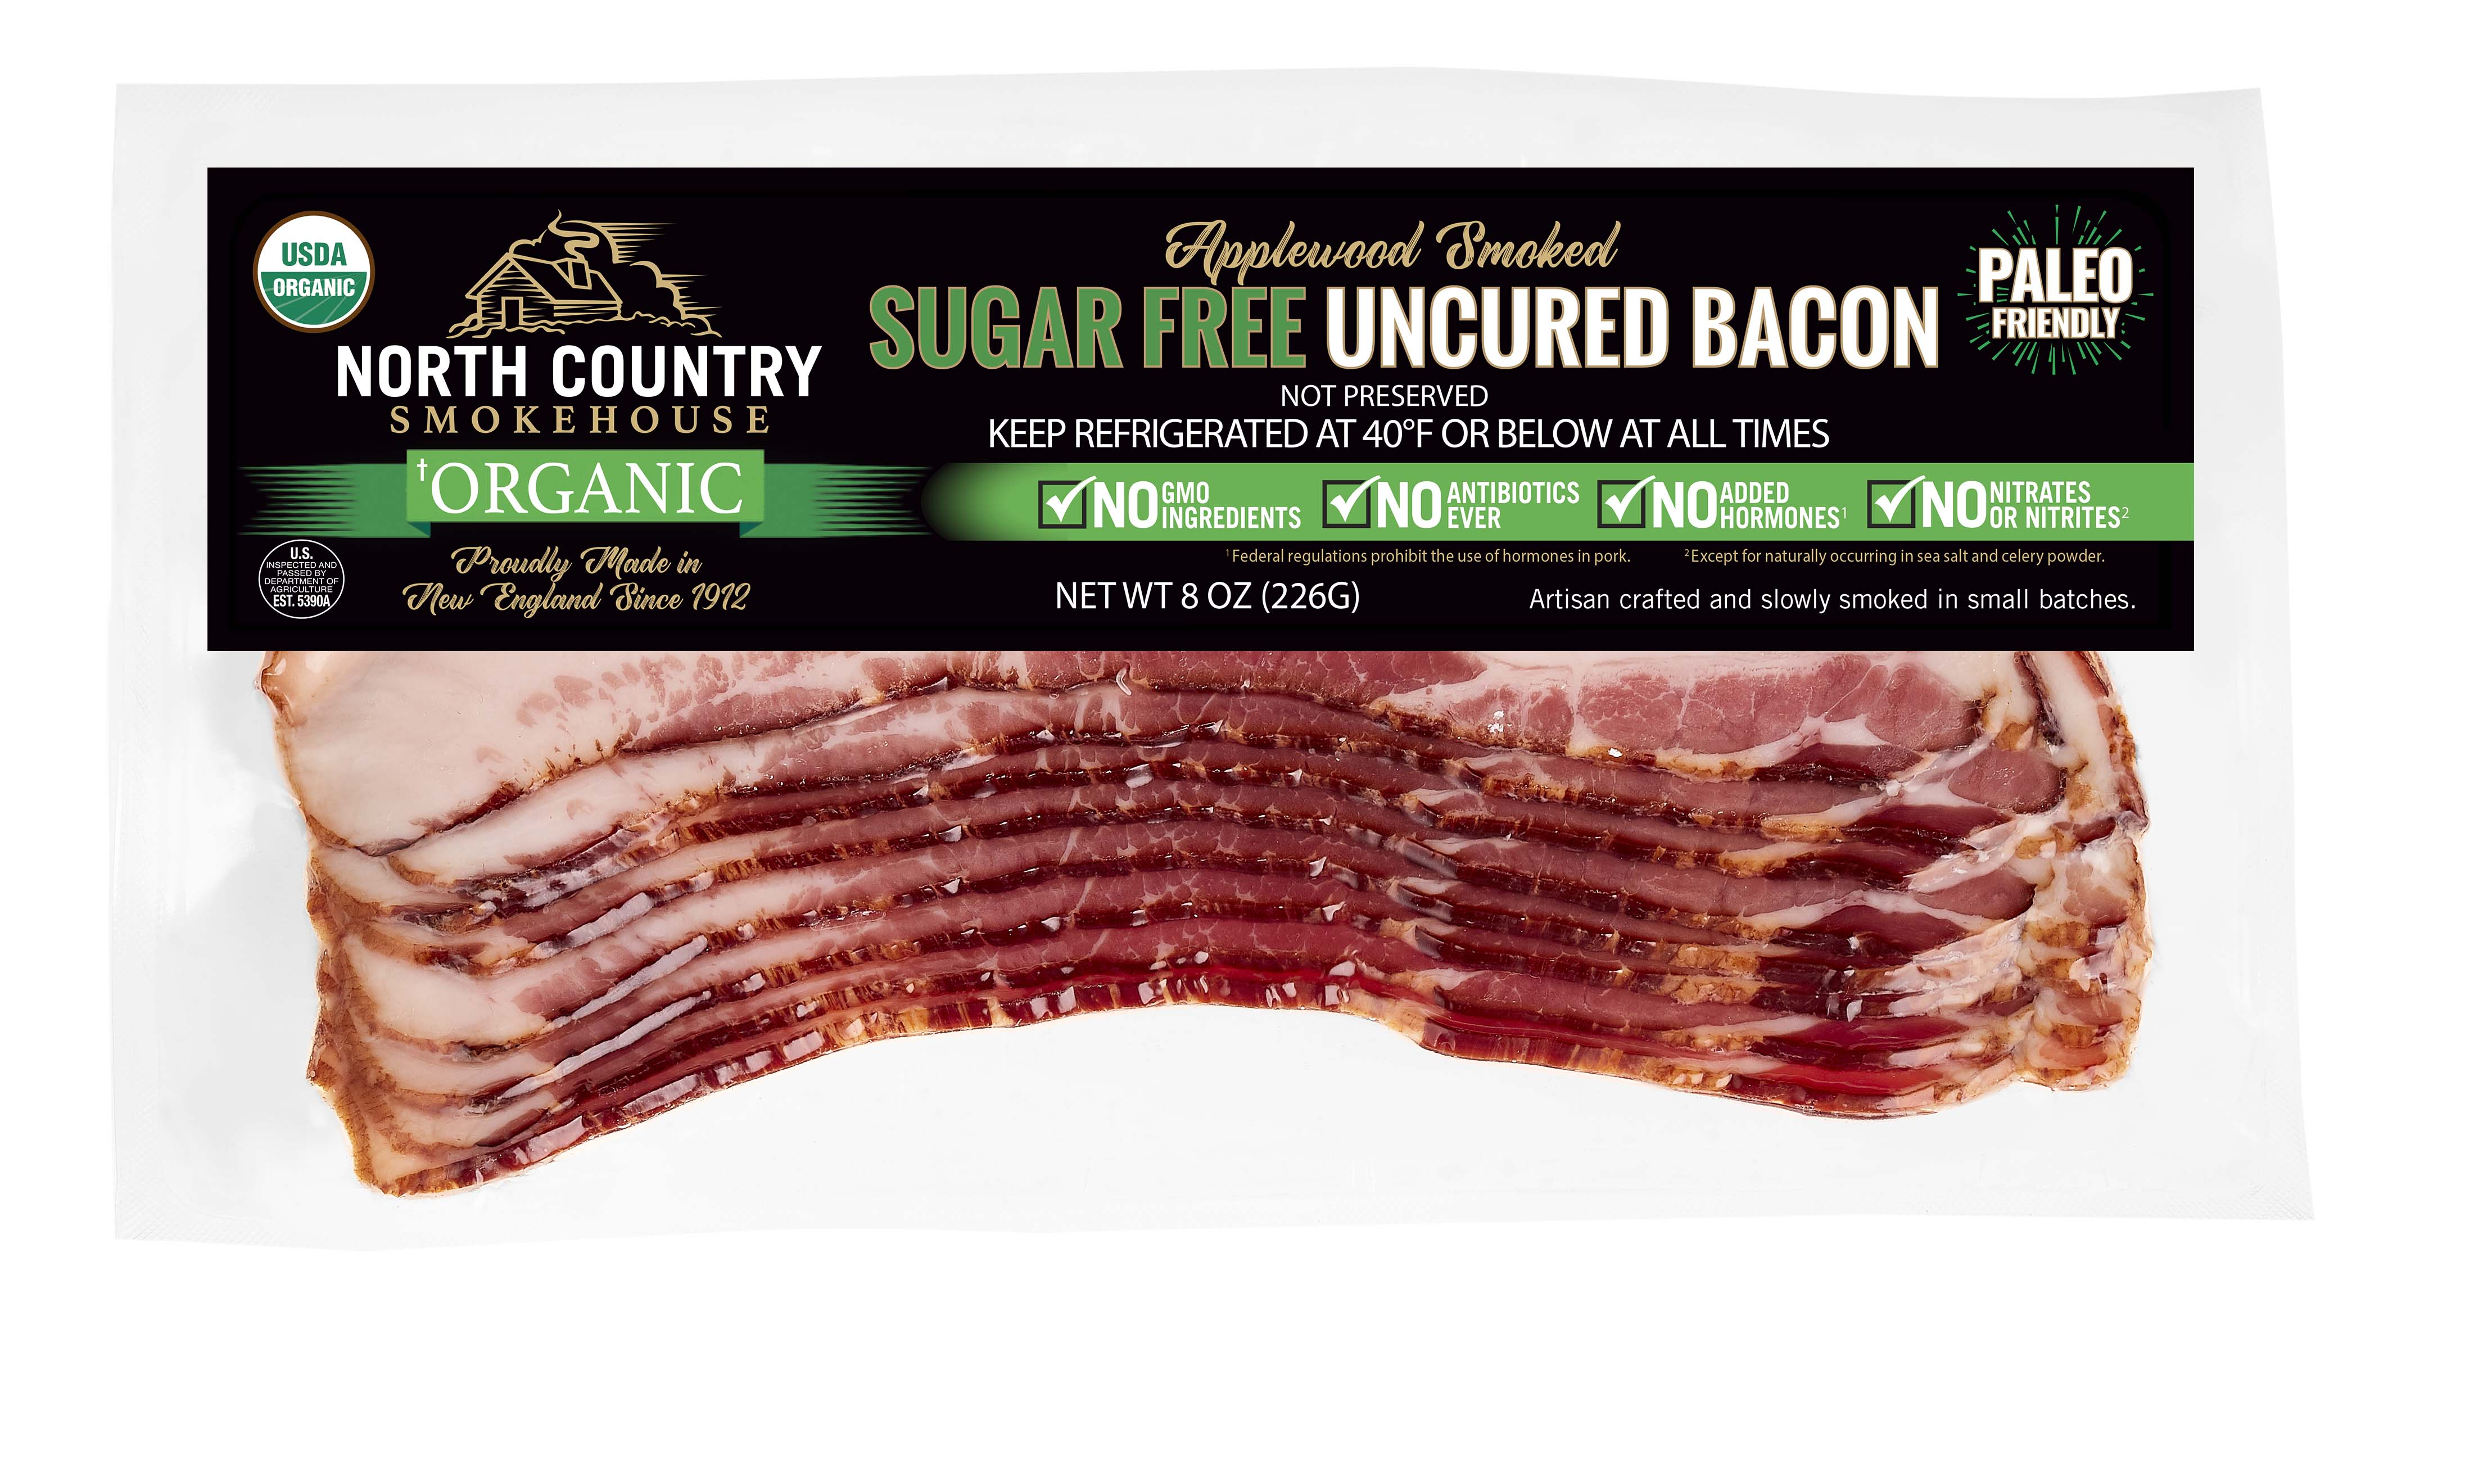 Organic Applewood Smoked Sugar-Free Bacon- 2, 8oz. packages